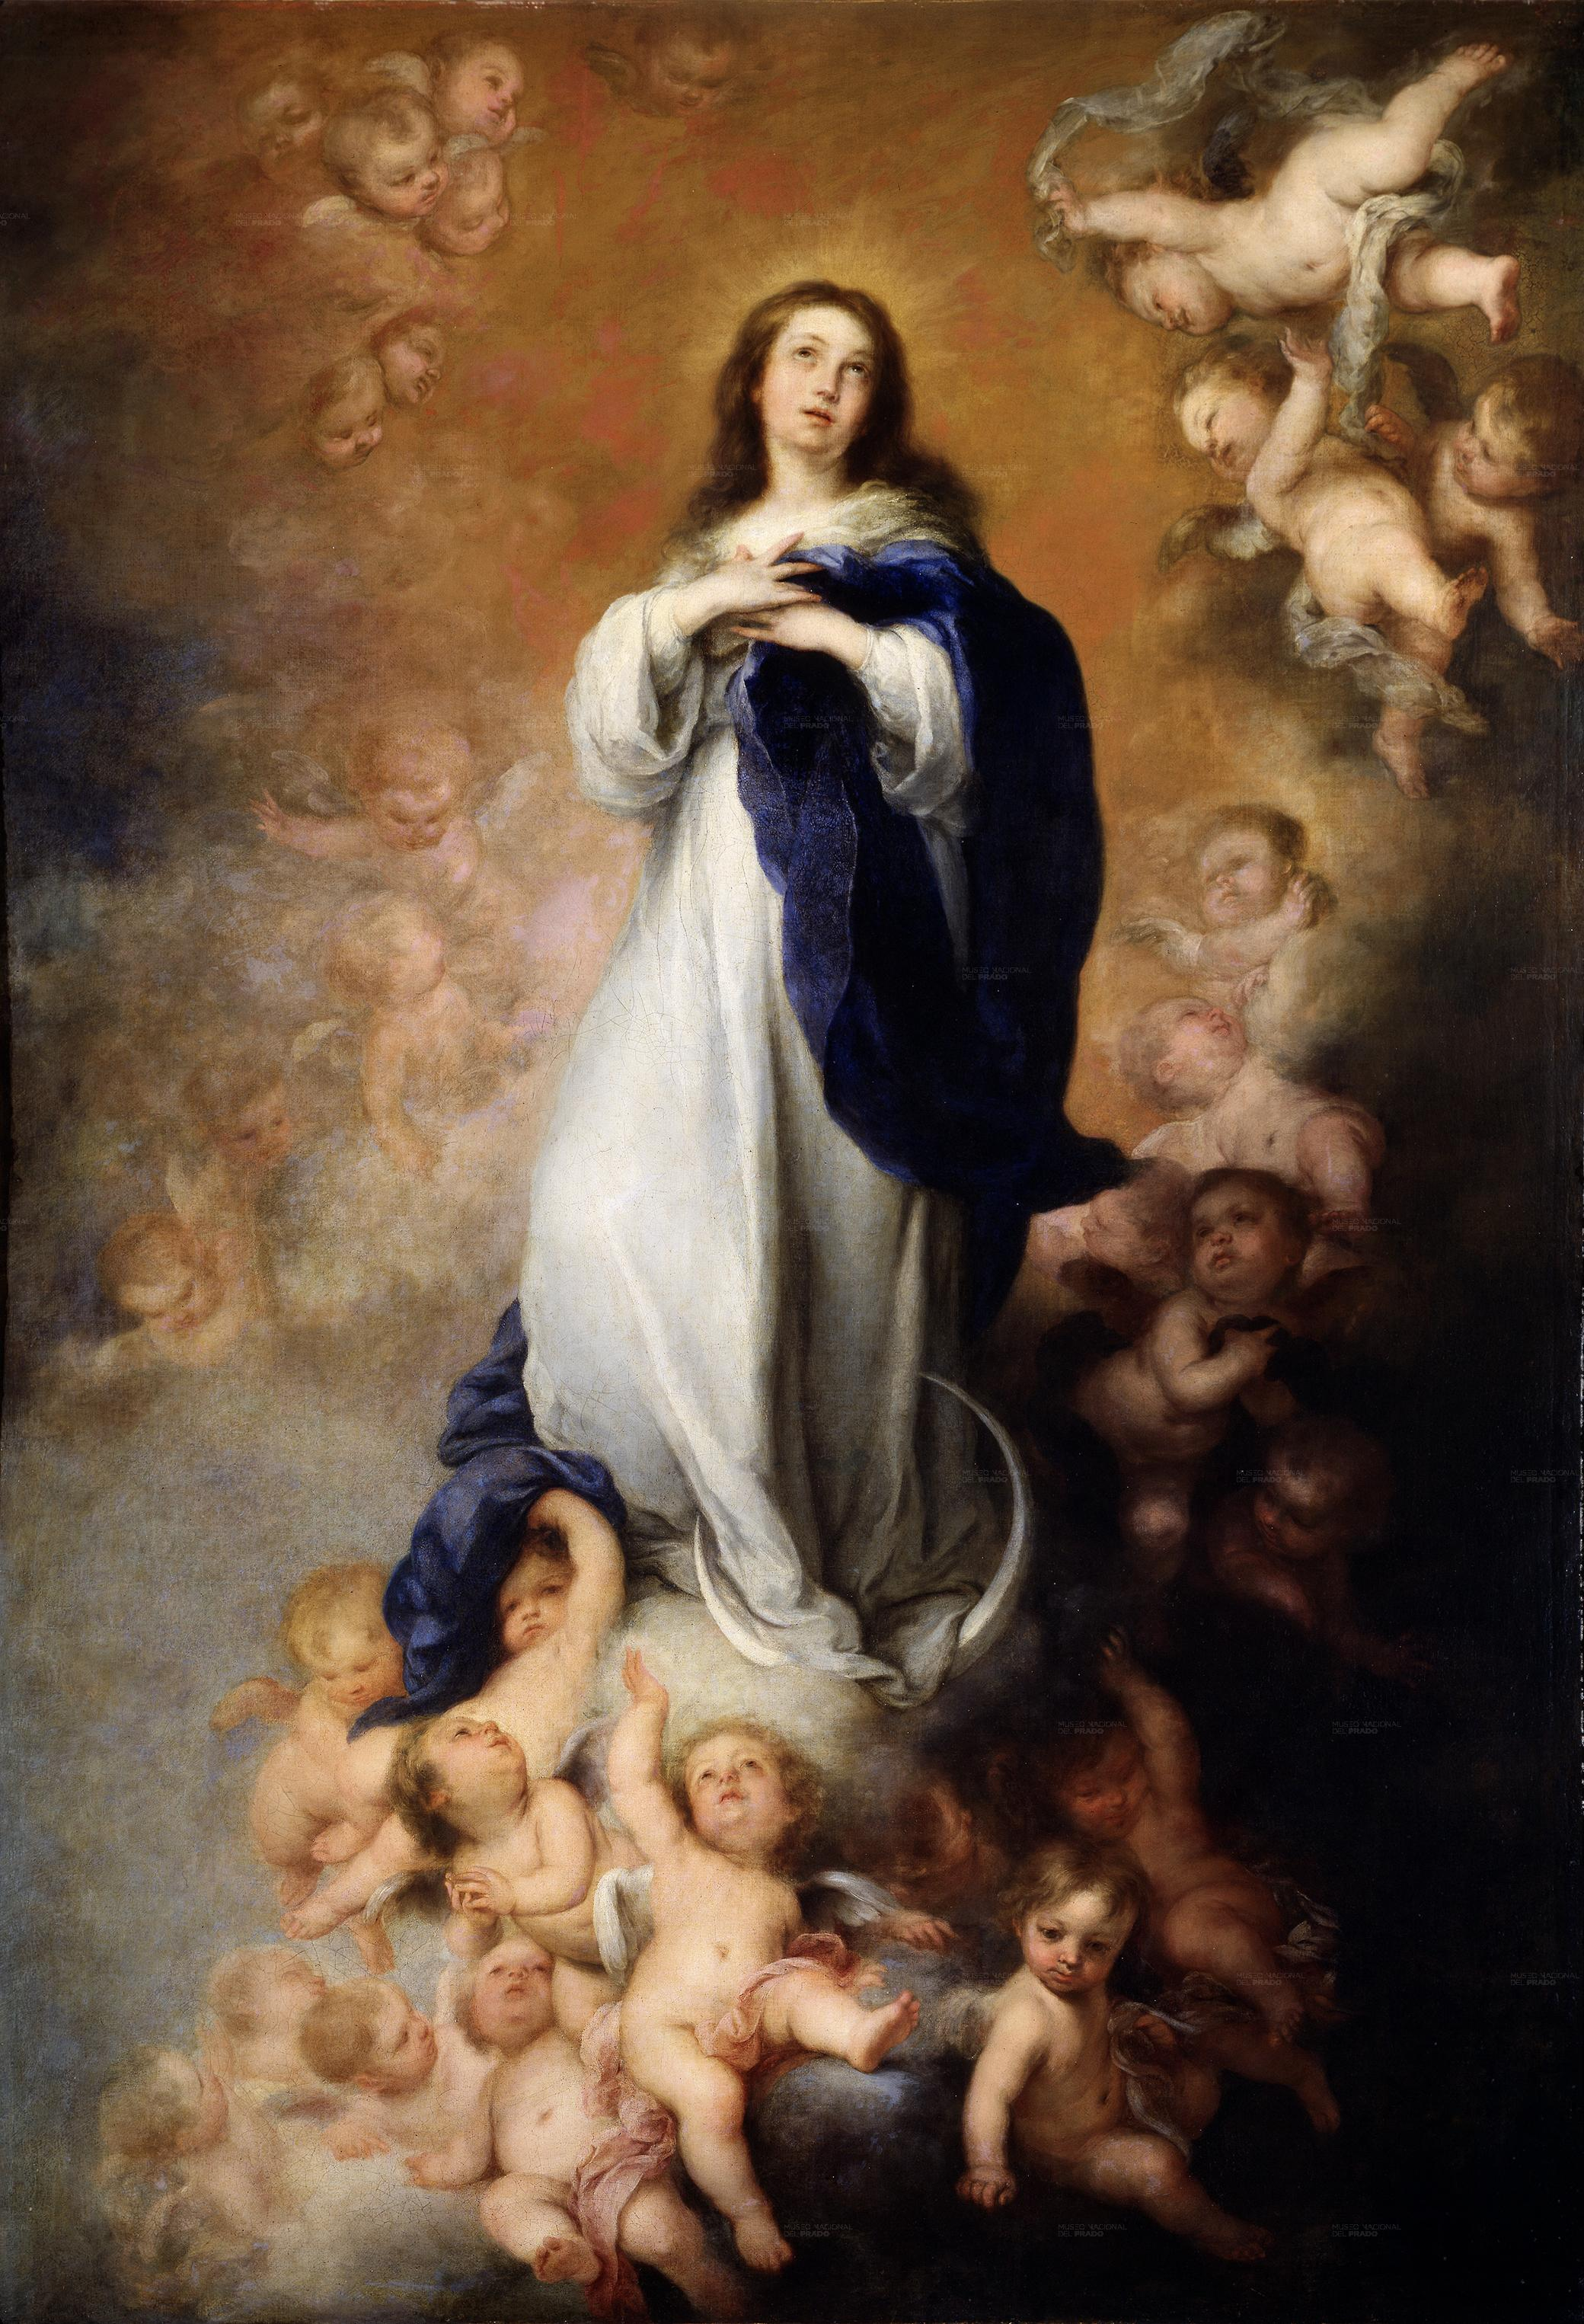 https://en.academic.ru/pictures/enwiki/77/Murillo_immaculate_conception.jpg